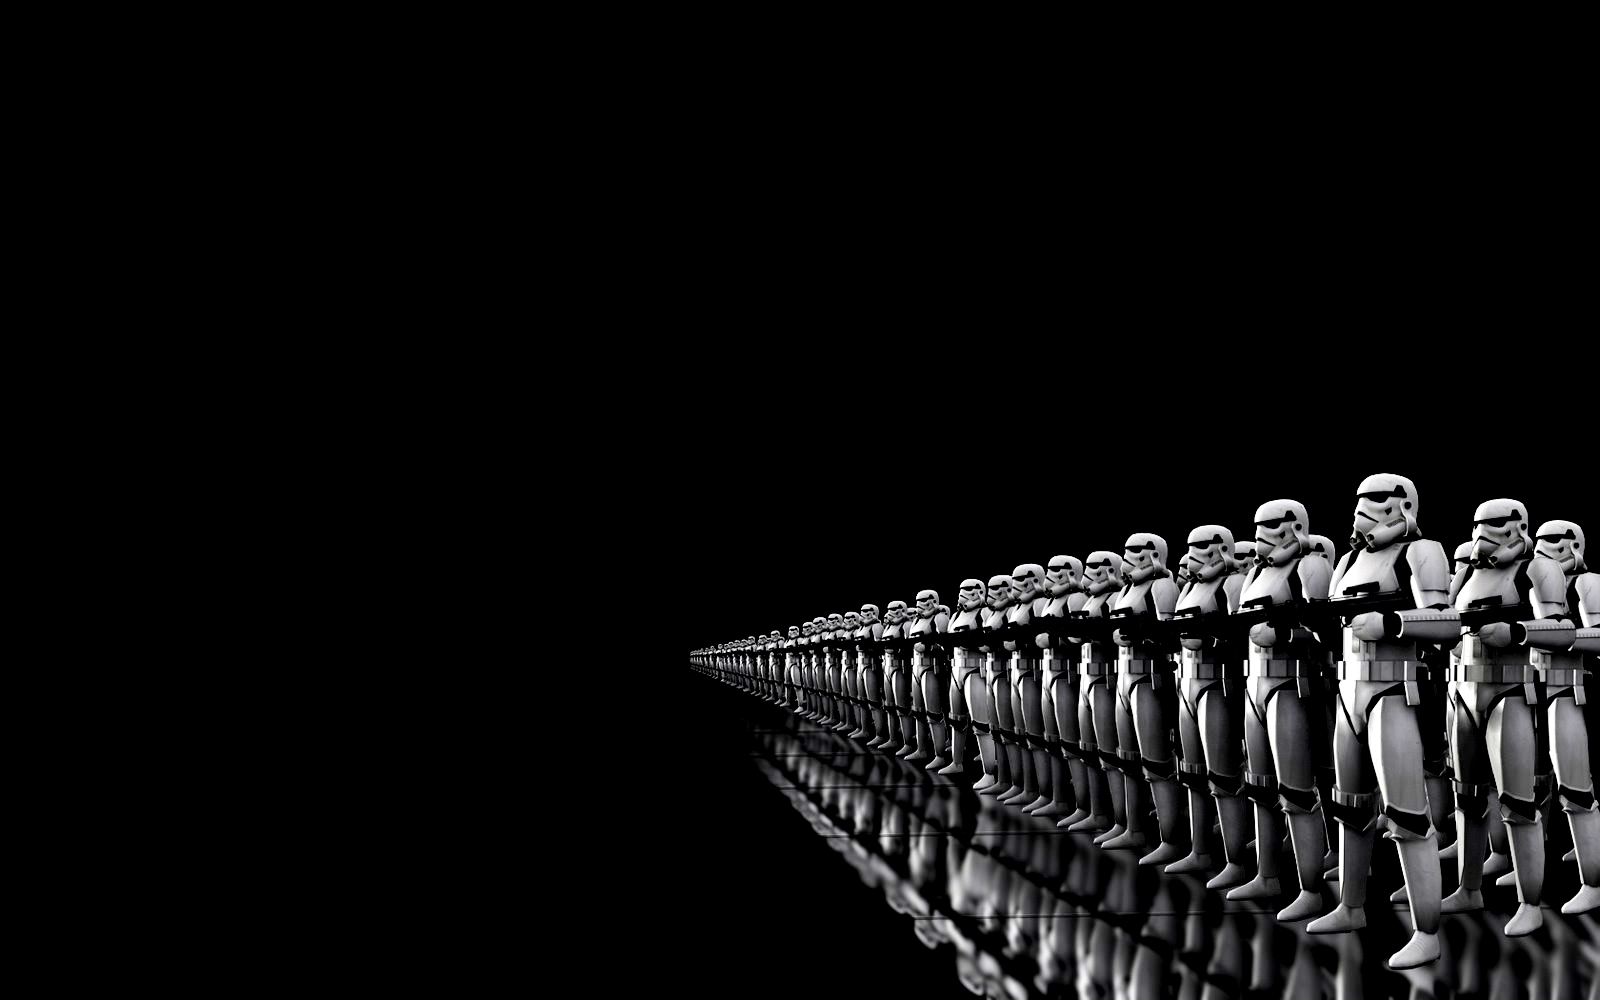 star wars hd, 1600x1000 – download for free